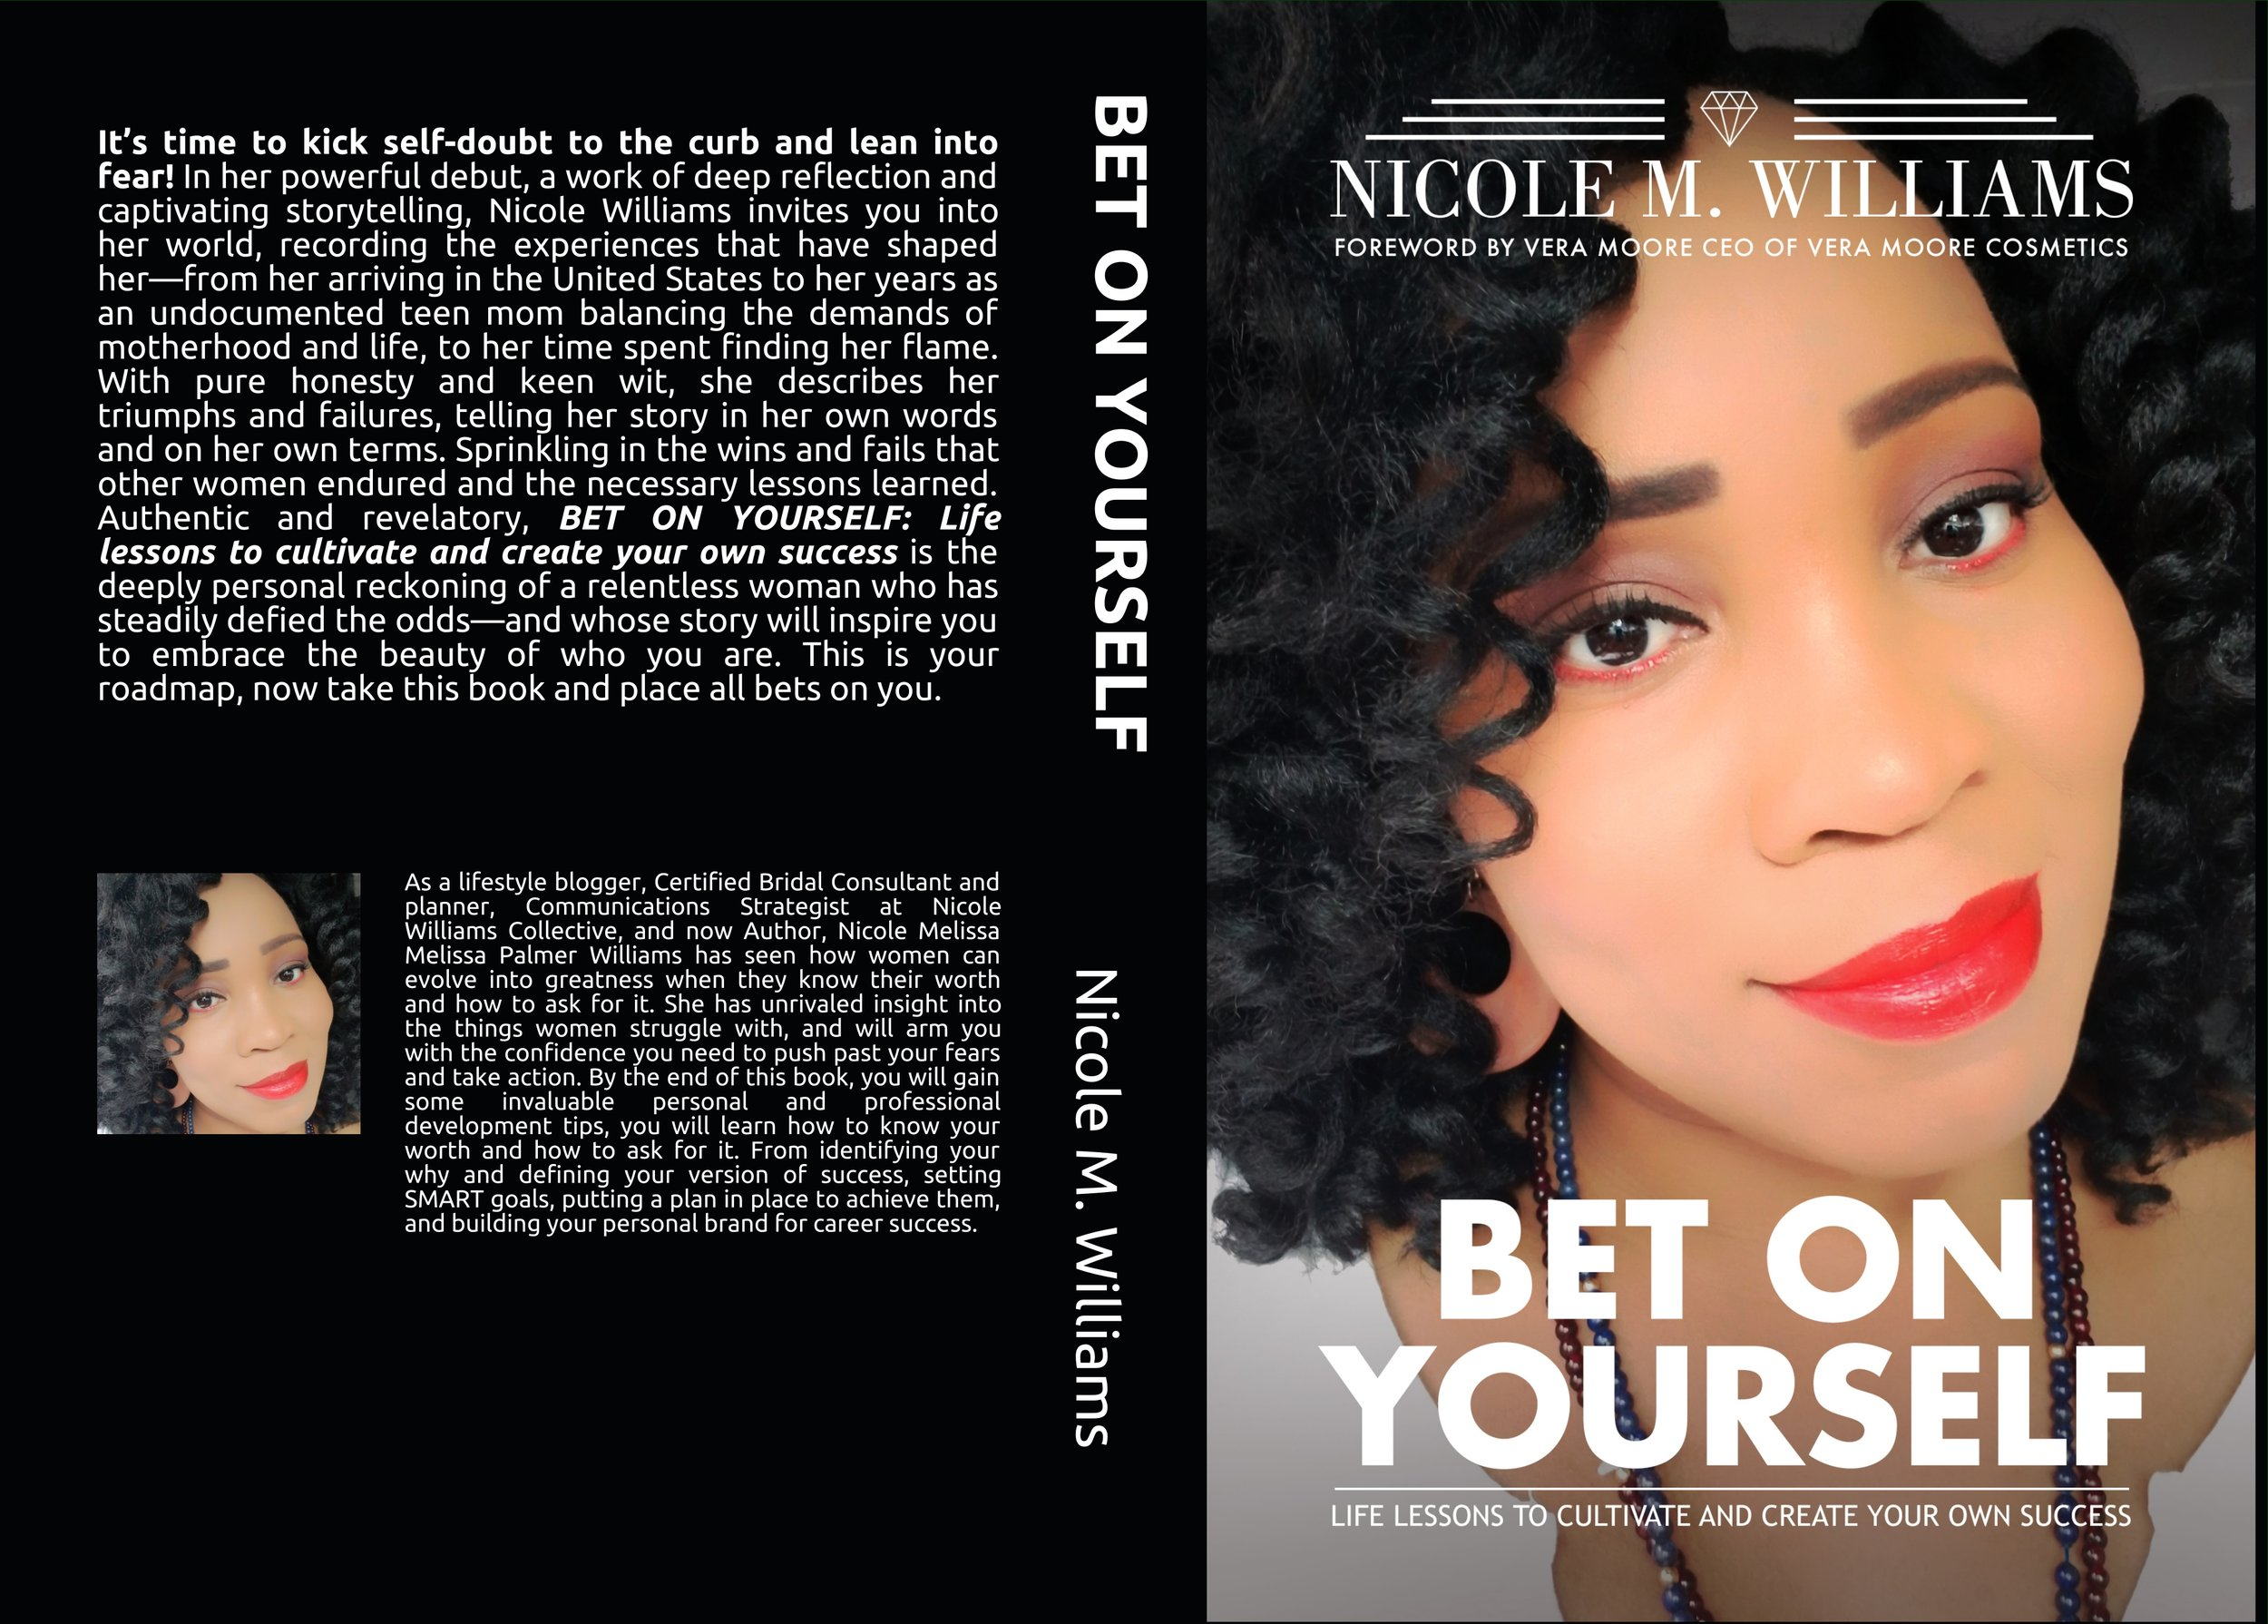 Bet On Yourself cover.jpg